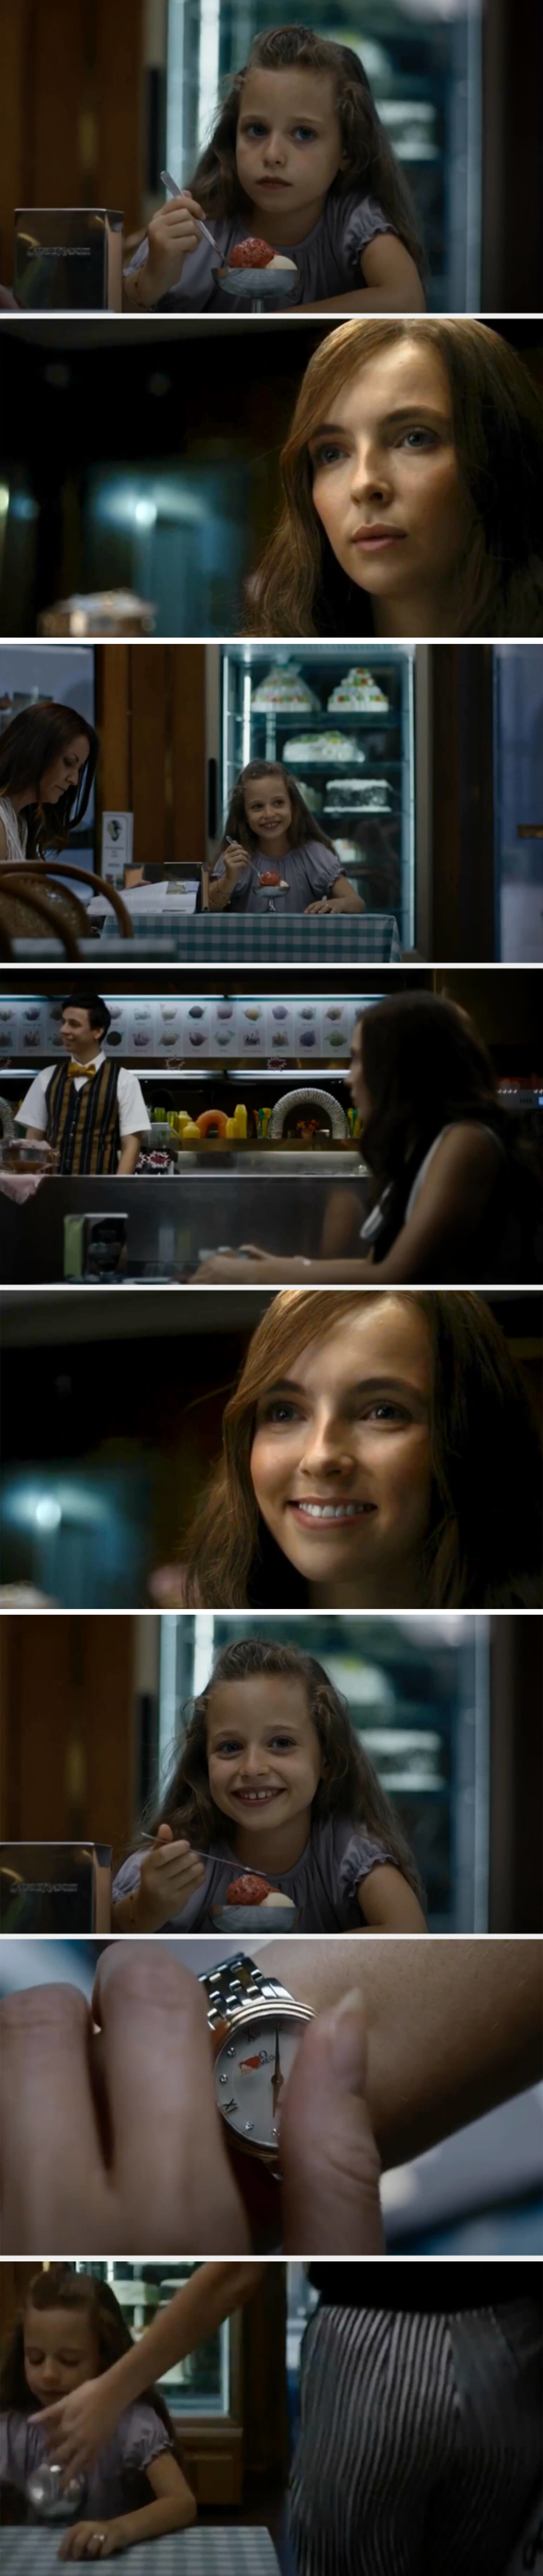 Villanelle tries to get a little girl at an ice cream shop to smile at her. Noticing she's smiling at an employee, she tries copying his smile, getting the girl to smile back. Then she cleans blood off her watch and knocks over the girl's ice cream